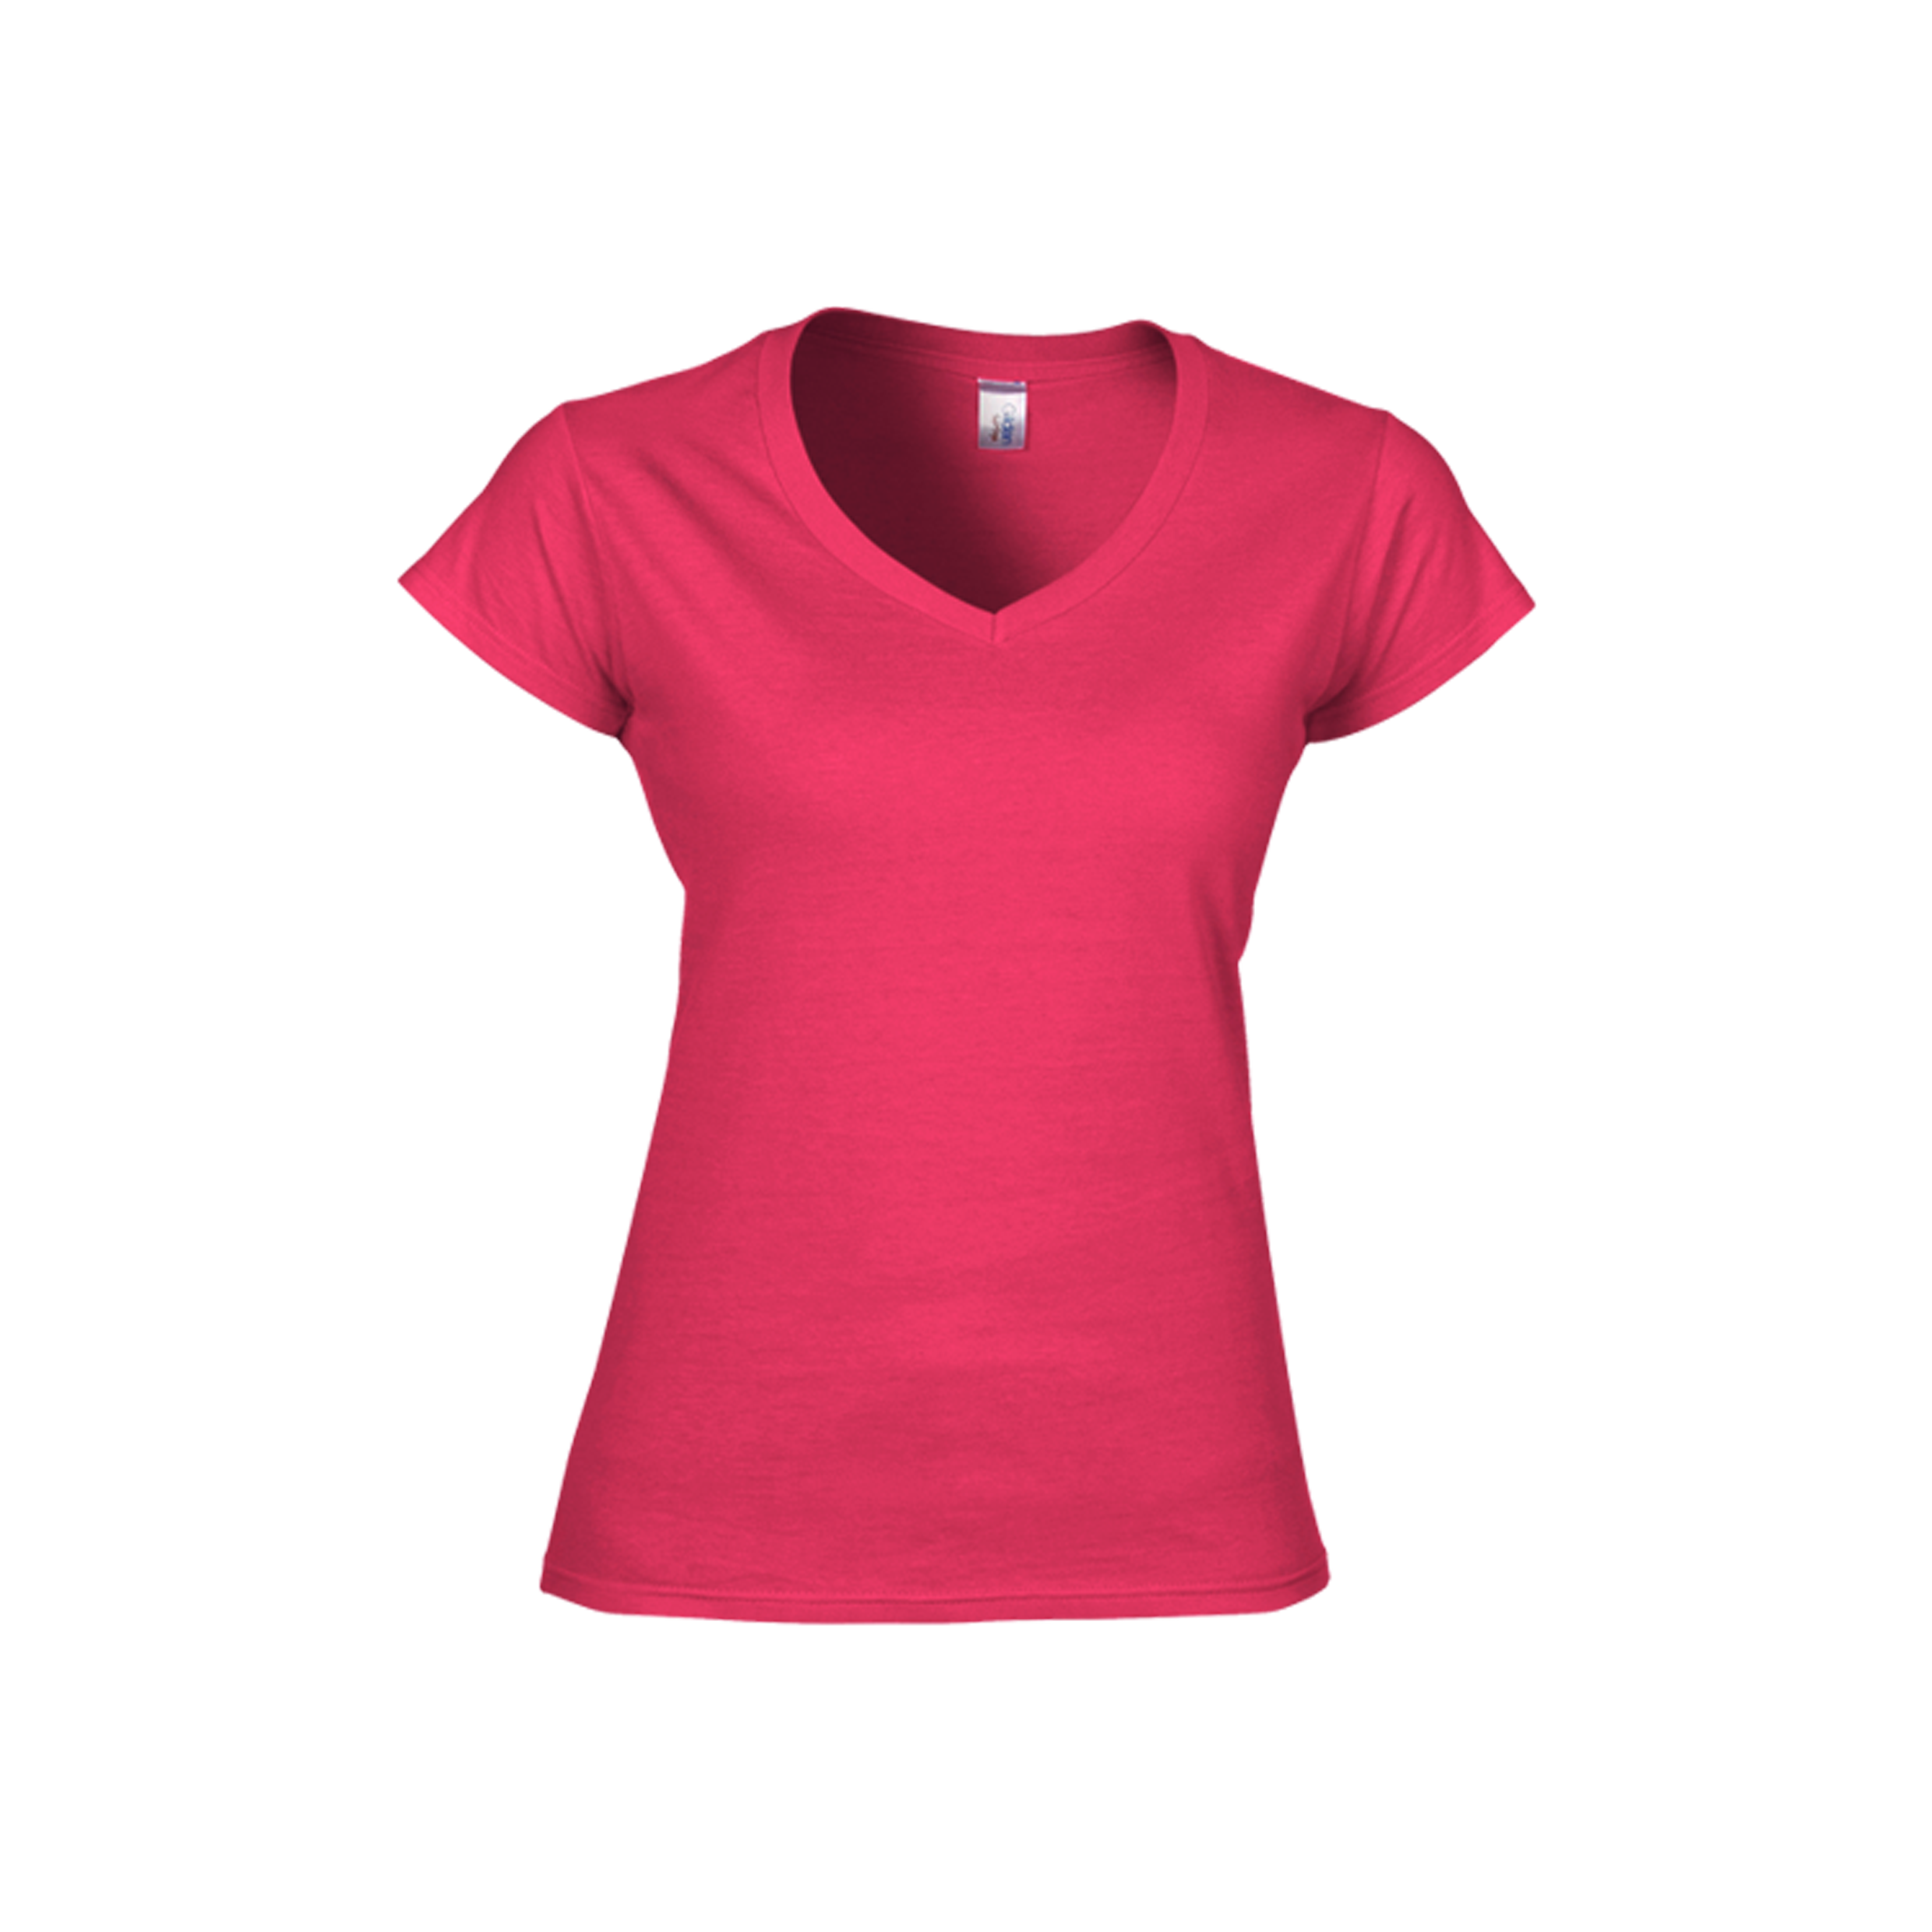 Gildan softstyle ladies v neck t shirt 63v00l 6 colors for Gildan t shirts online